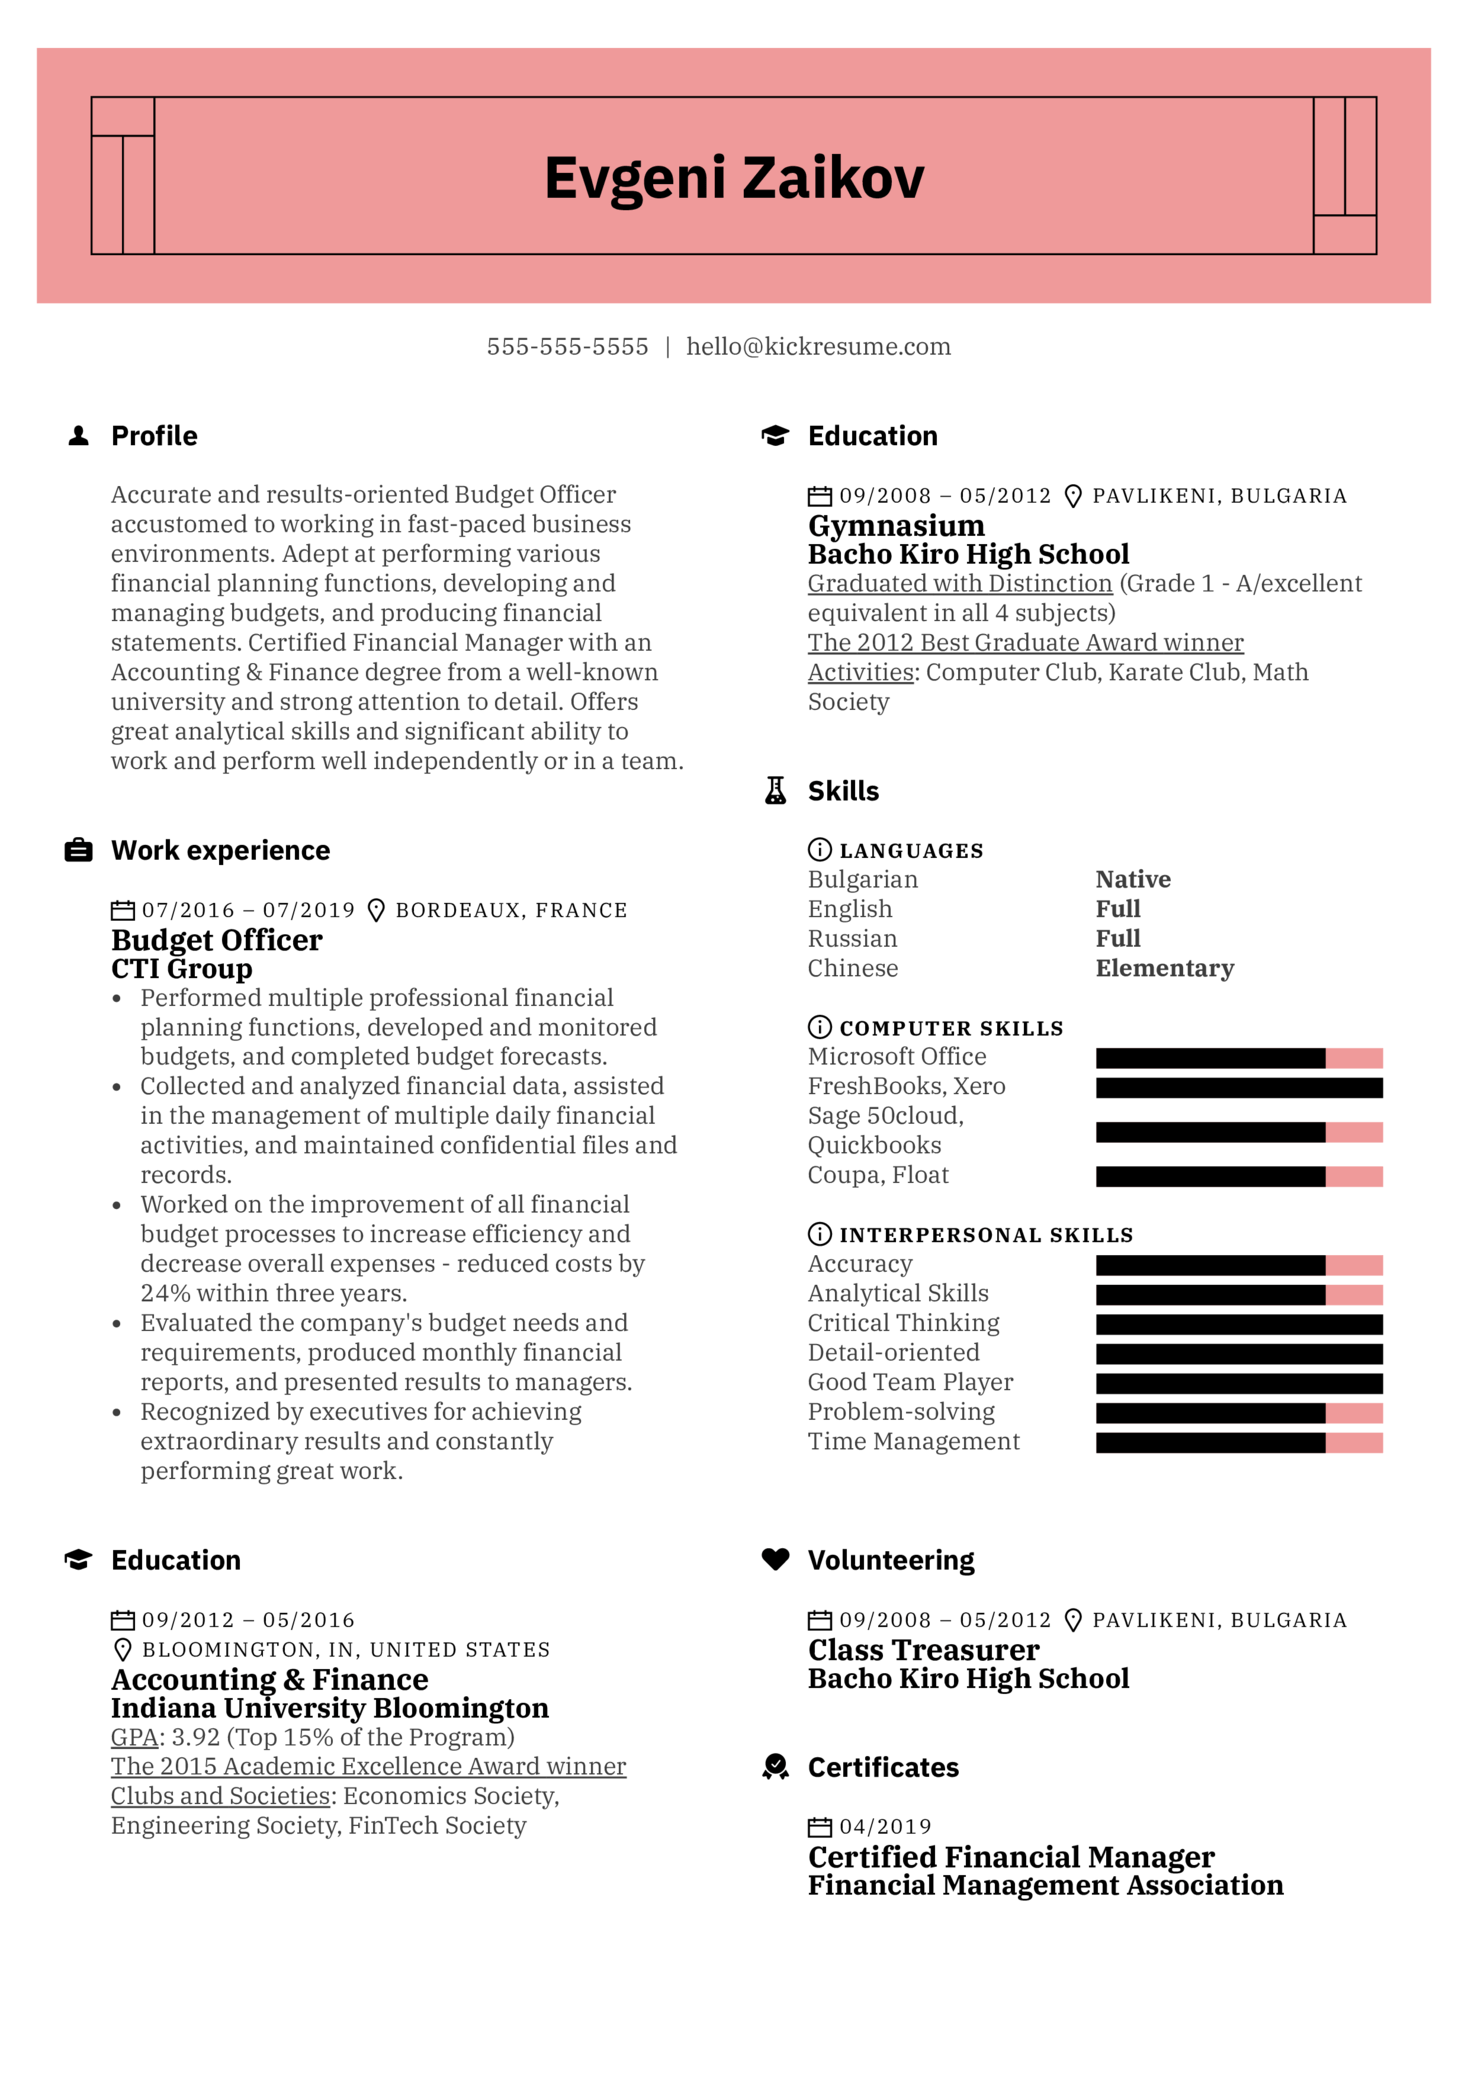 Budget Officer Resume Example (Part 1)